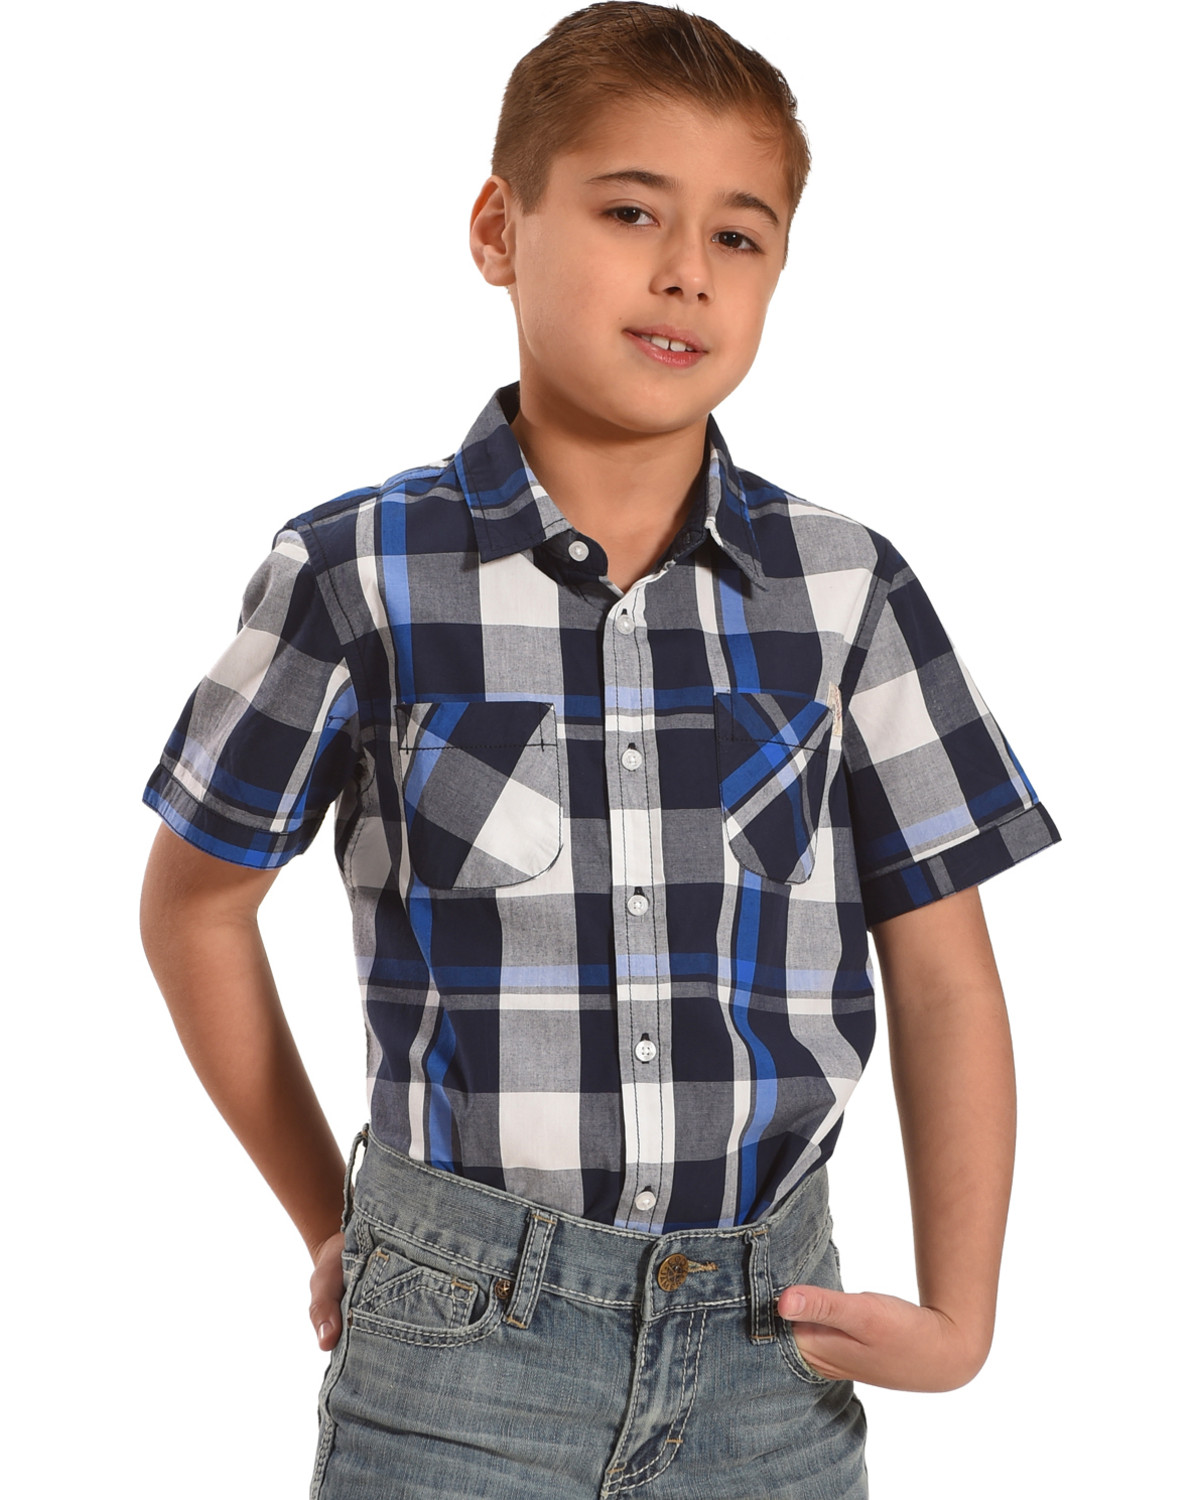 ca80687a1 Zoomed Image Silver Toddler Boys' Navy Plaid Short Sleeve Button Down Shirt,  Navy, hi-